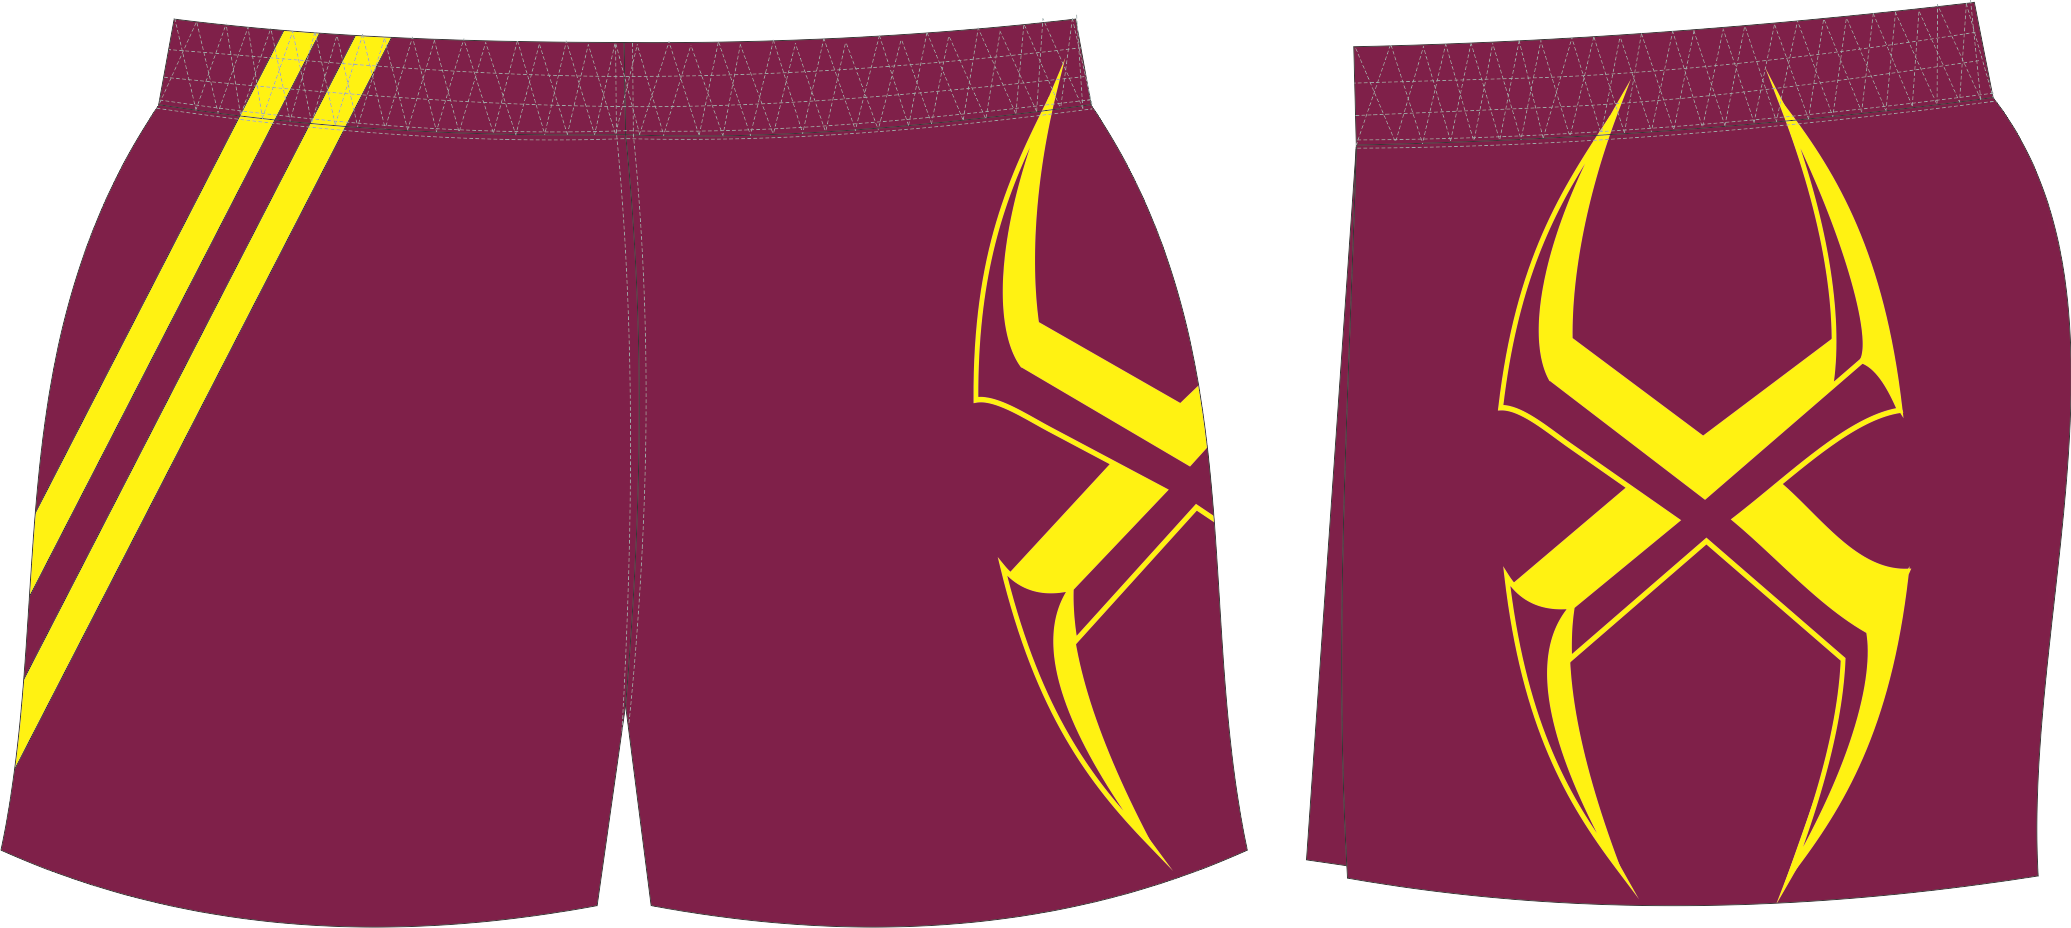 X301XST Maroon Gold Short.png